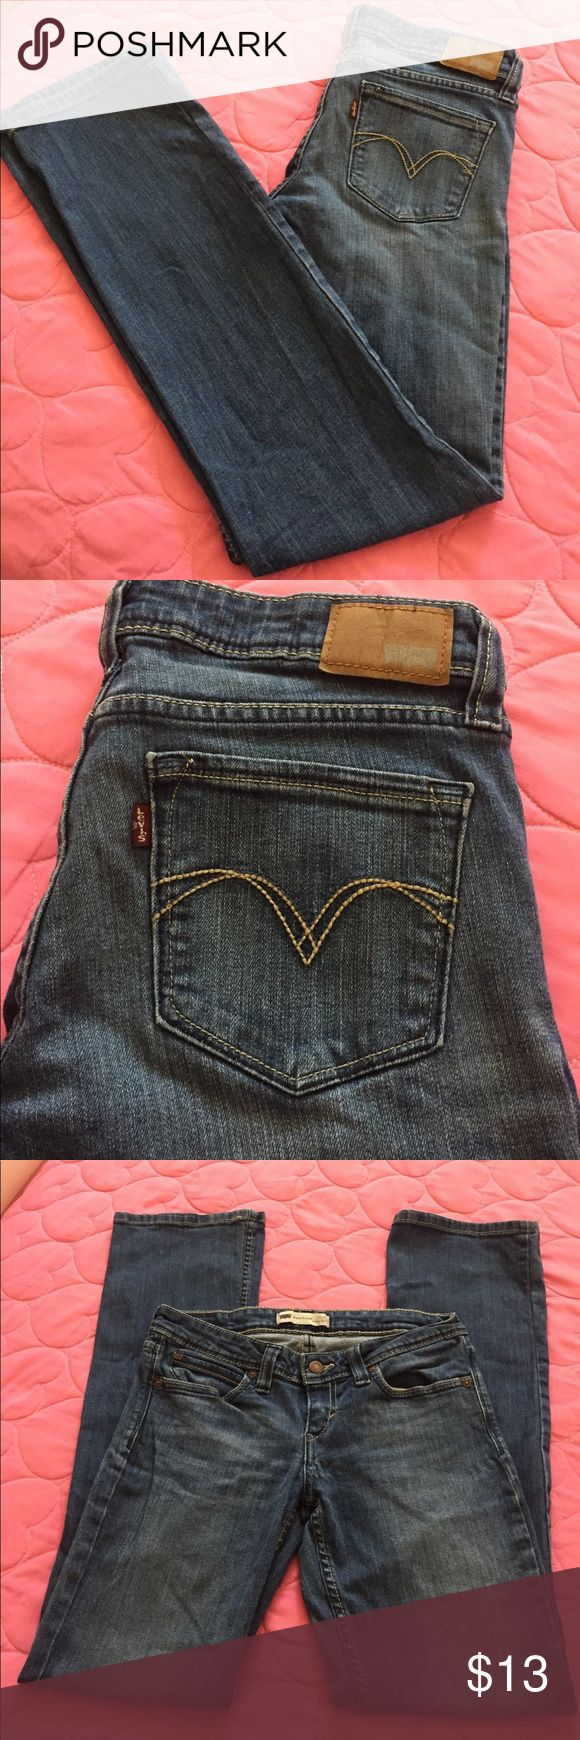 "LEVI'S LOW RISE BOOTCUT Used, but still in really good condition, no signs of tear, rips or stains at all, the size description is on one of the pictures, I am 5.5"" tall and used to be  size 5 or 7 in juniors and it fit me perfect, but I'm size 3 now, so is a little big. Any questions let me know. Levi's Pants"